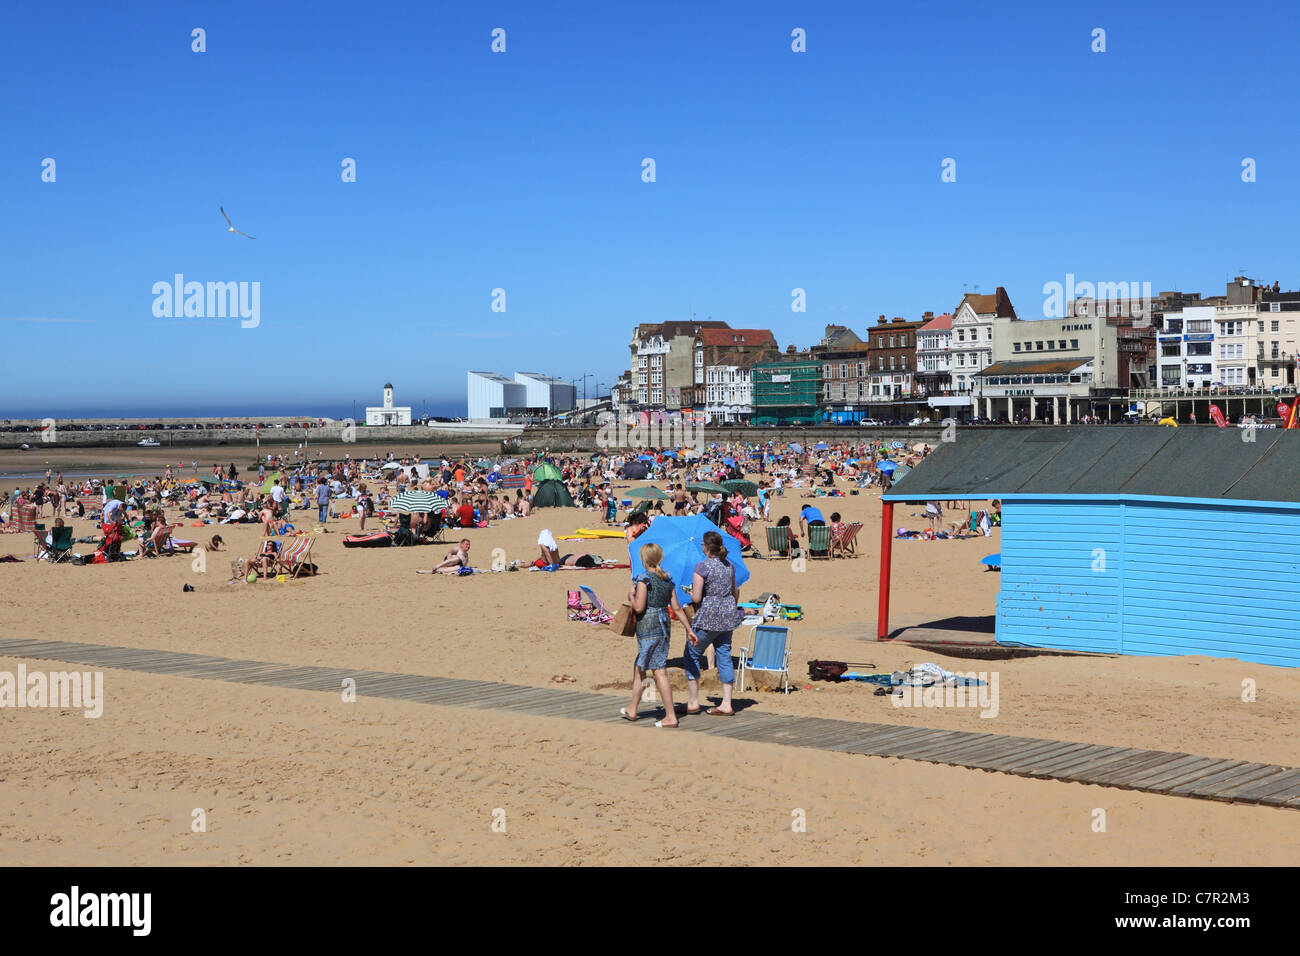 Beach at Margate, Kent, East of England, UK - Stock Image